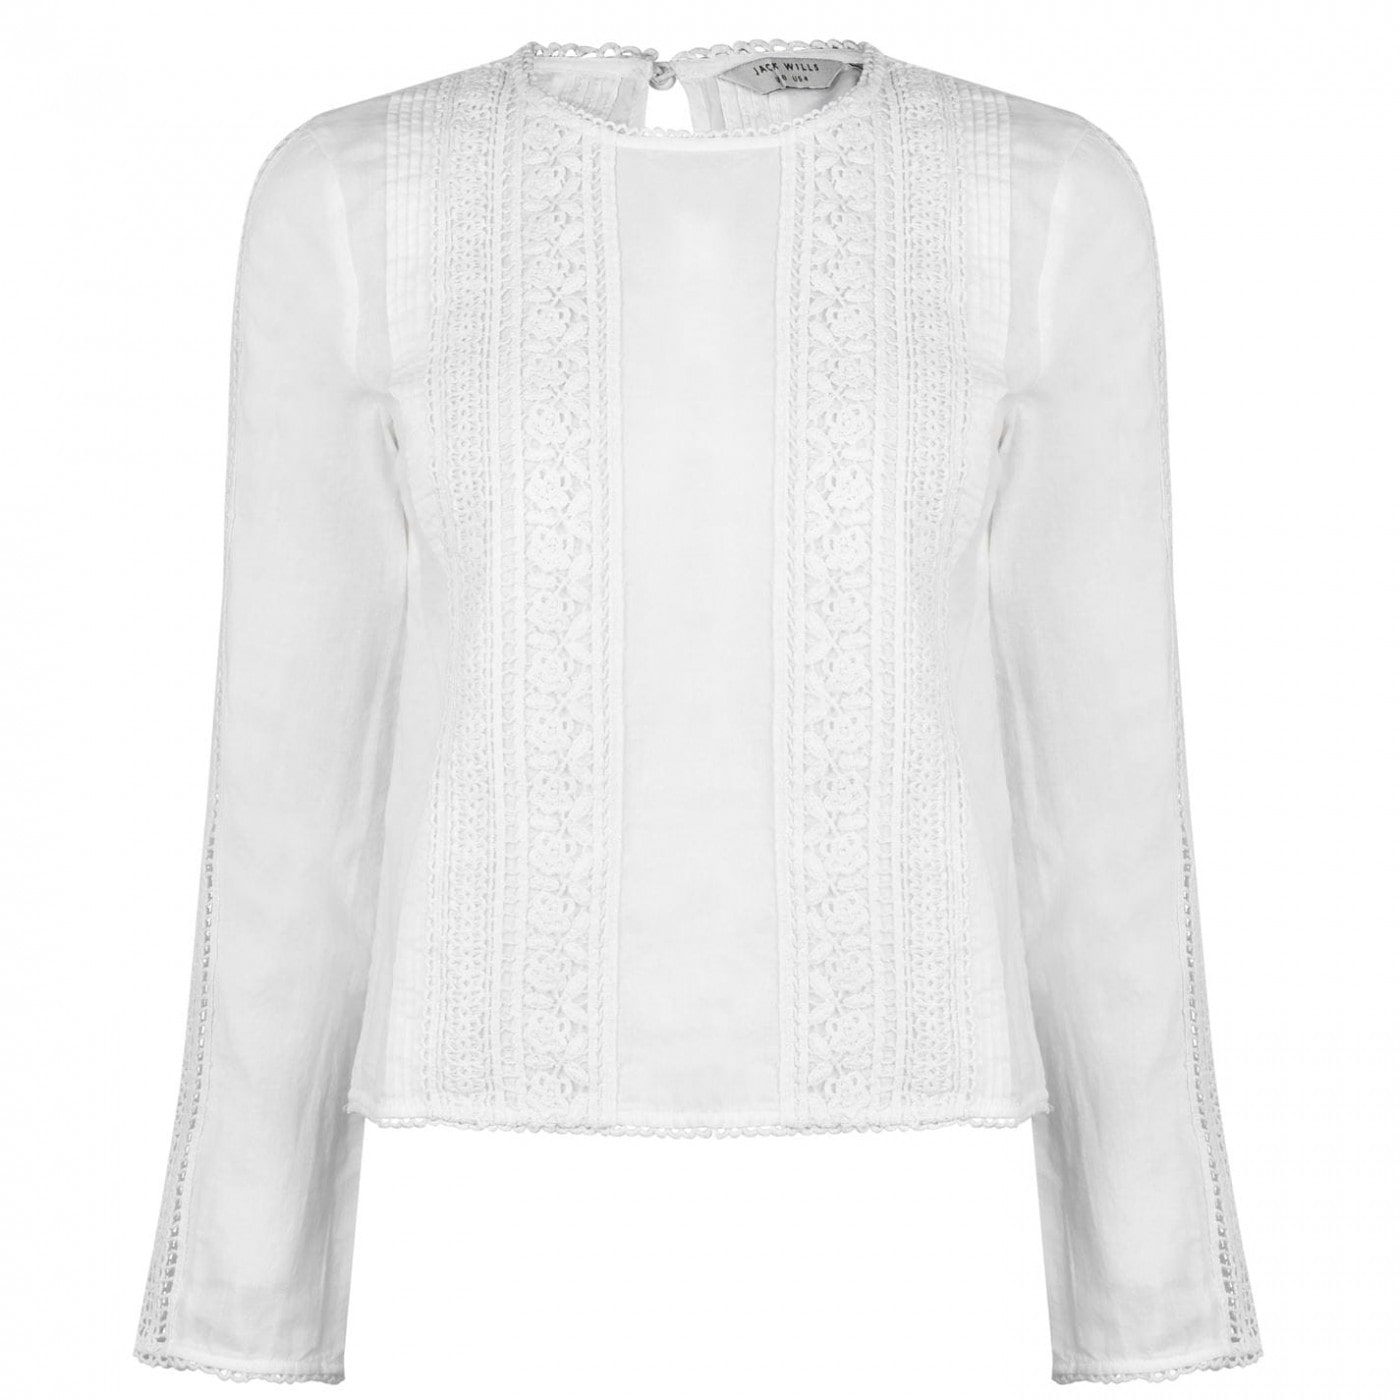 Jack Wills Marygold Lace Top